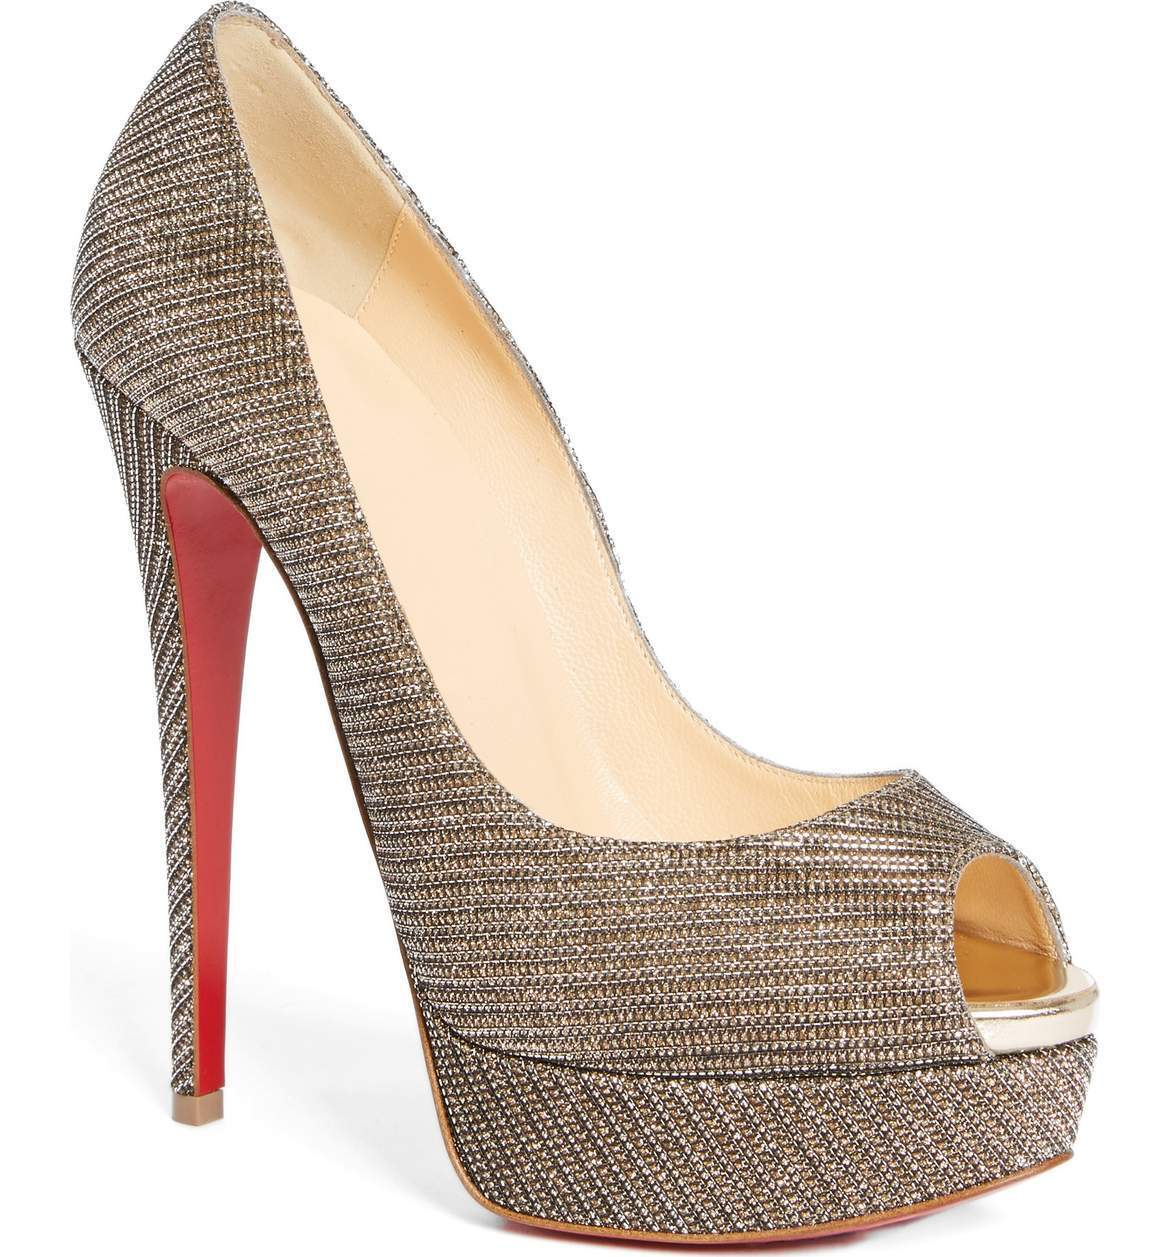 Sz 6.5   37 Christian Louboutin Metallic Silver Silver Silver Lady Peep Toe Platform Pump shoes 3d6638